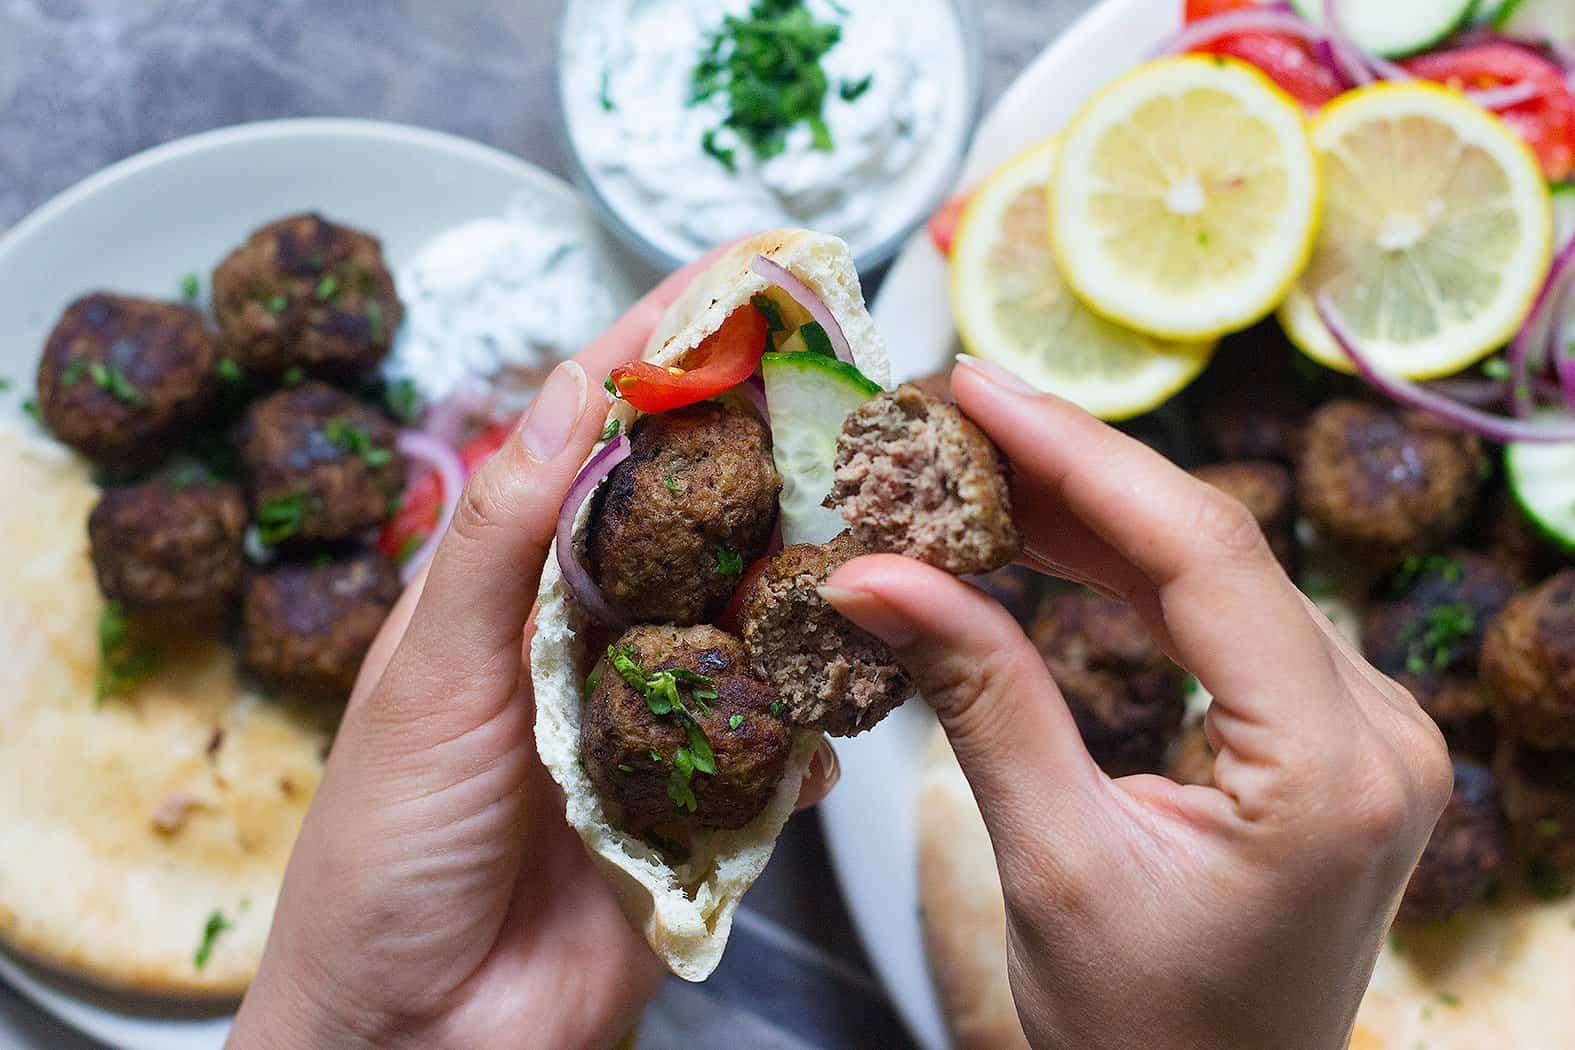 You can stuff a pita bread with Greek meatballs and vegetables.